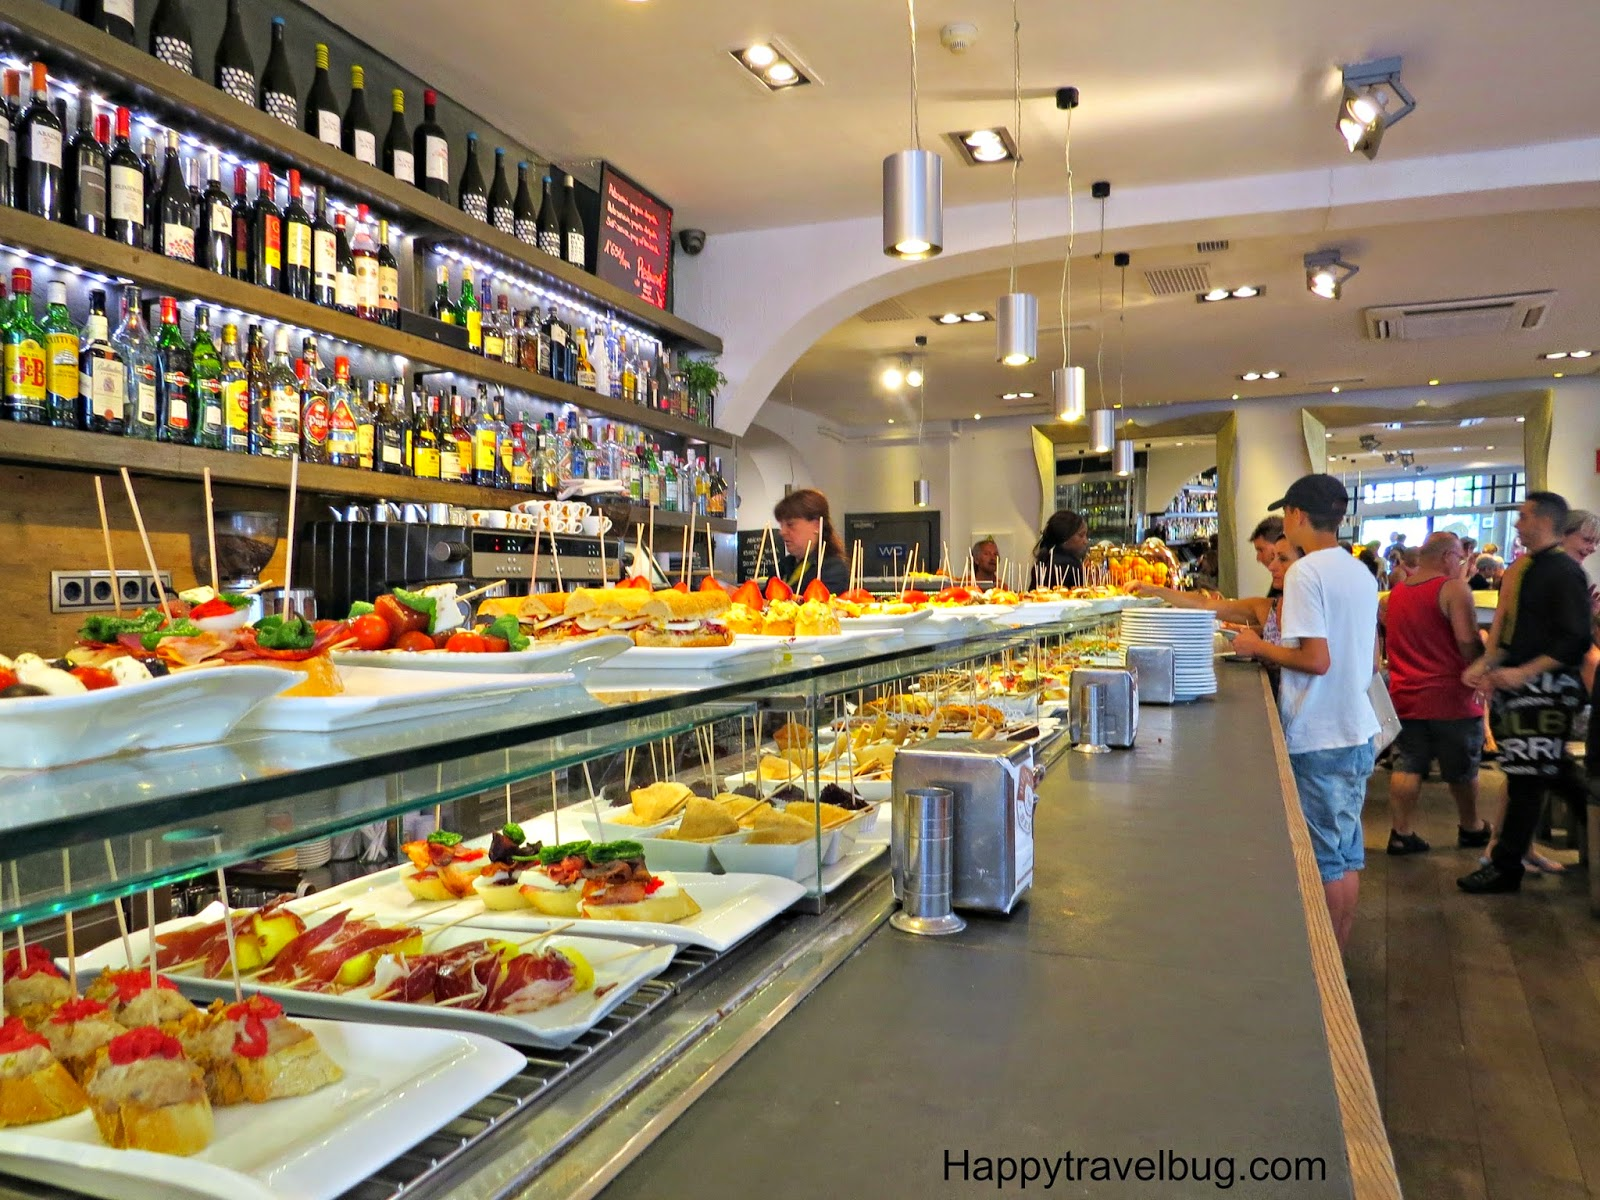 Tapas restaurant in Barcelona, Spain